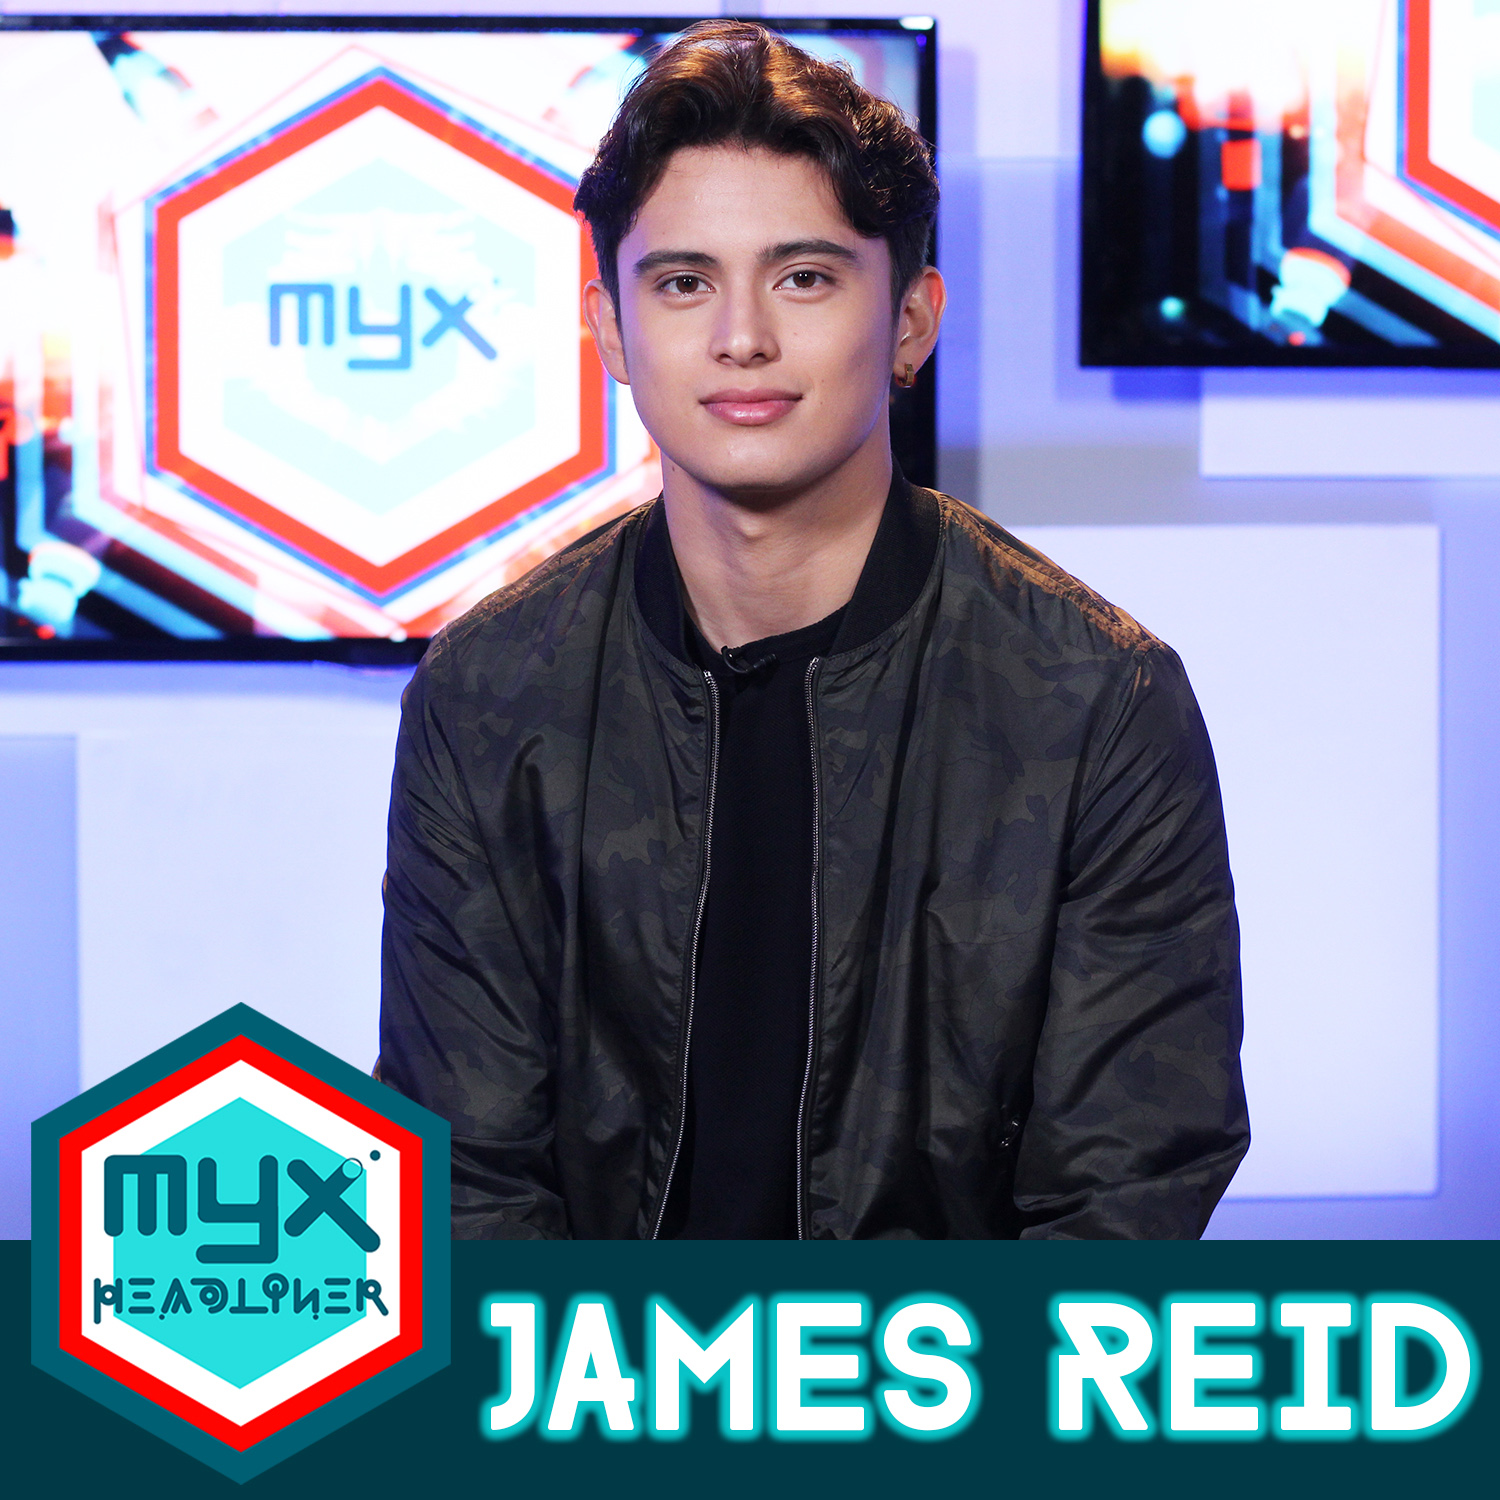 James 'cools down' as MYX headliner